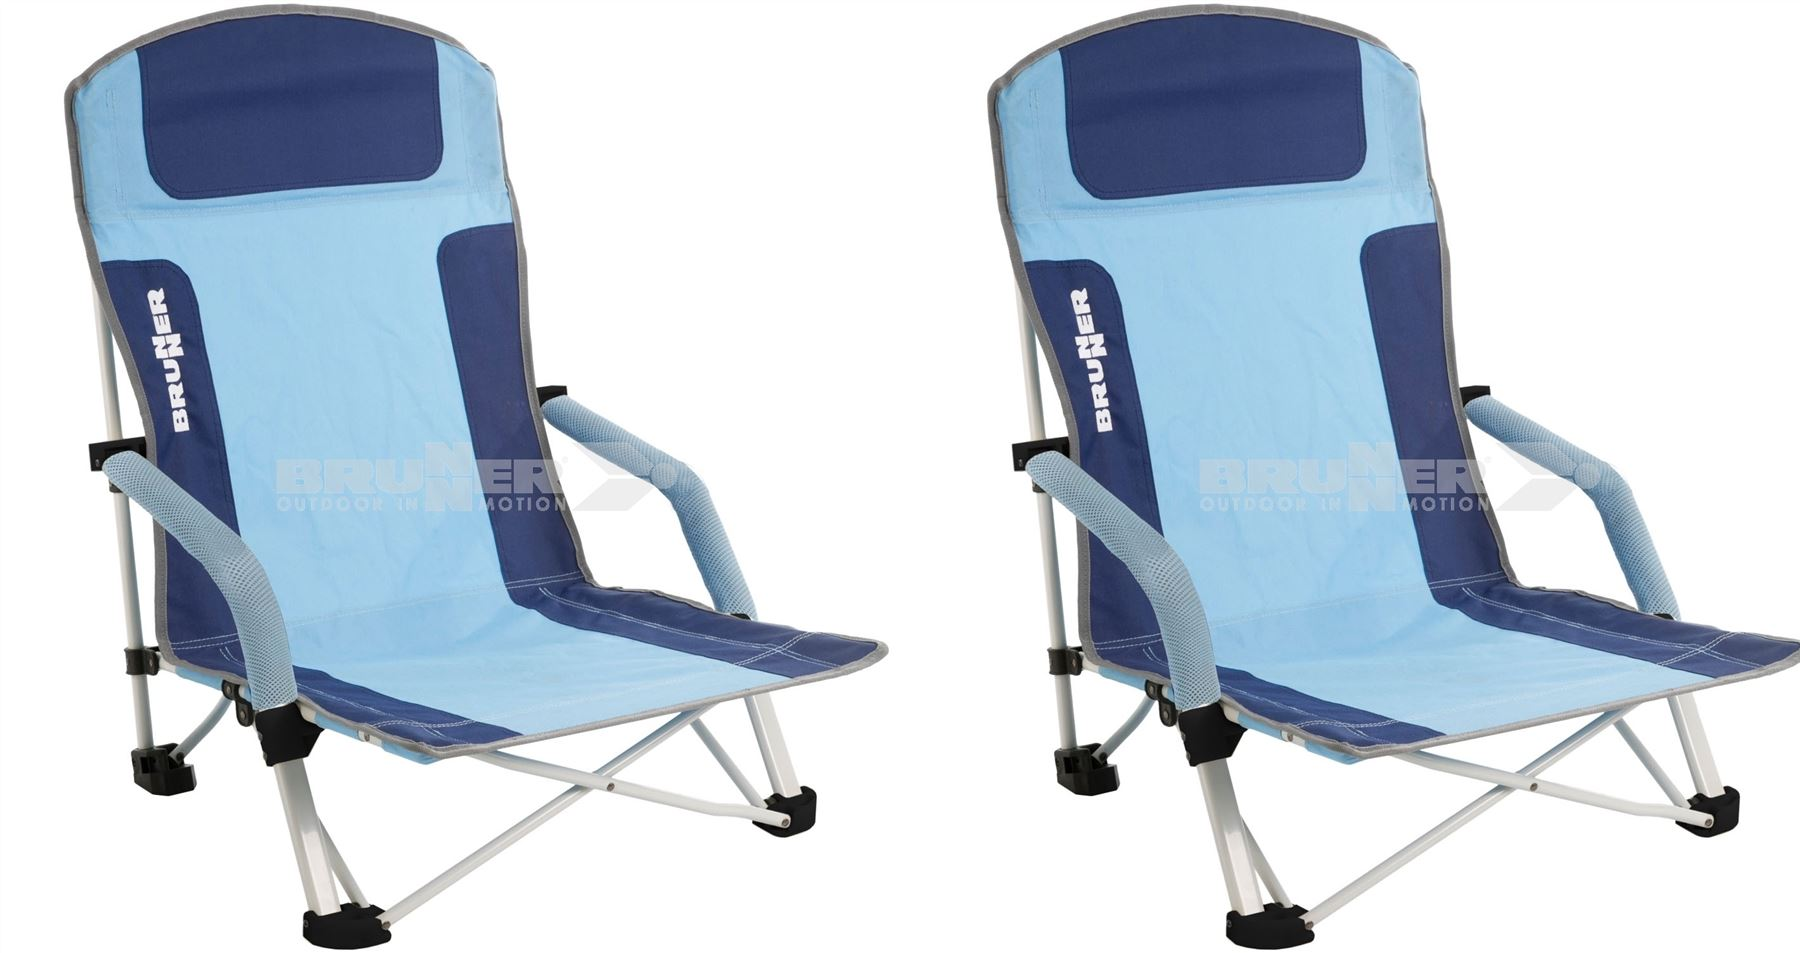 Brunner Bula Low Camping Beach Folding Chair x 2